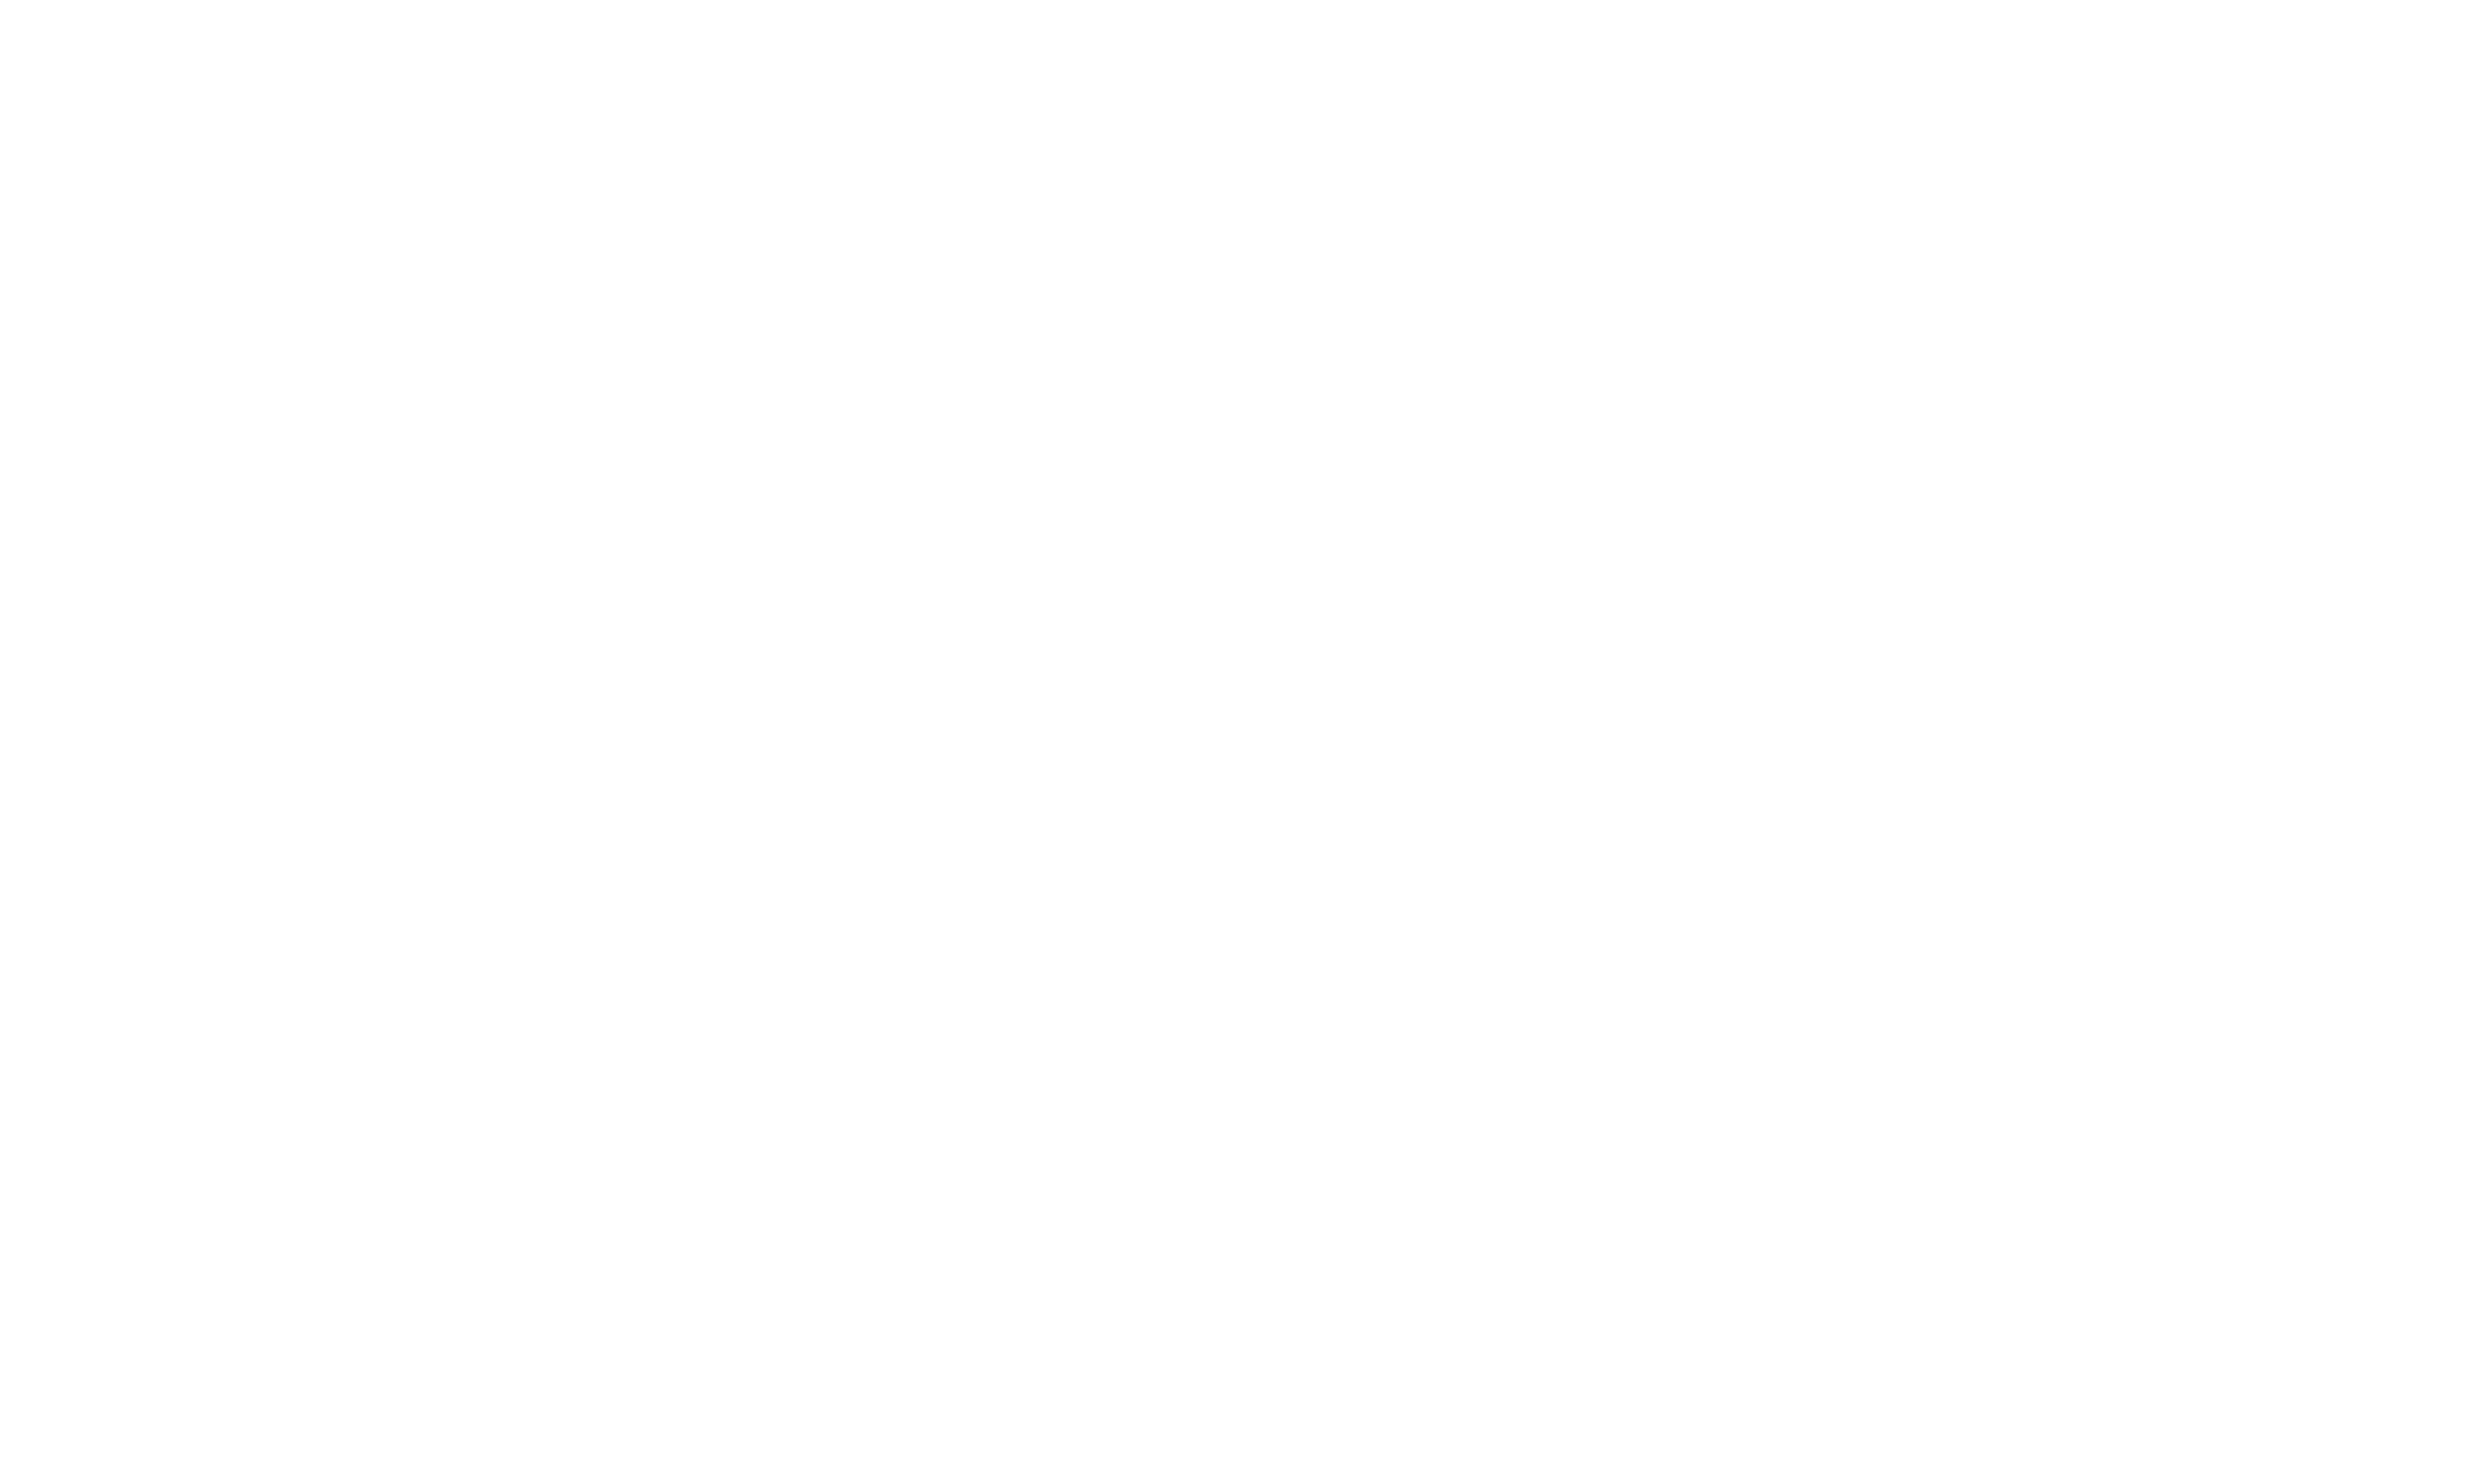 George Dickson Photography